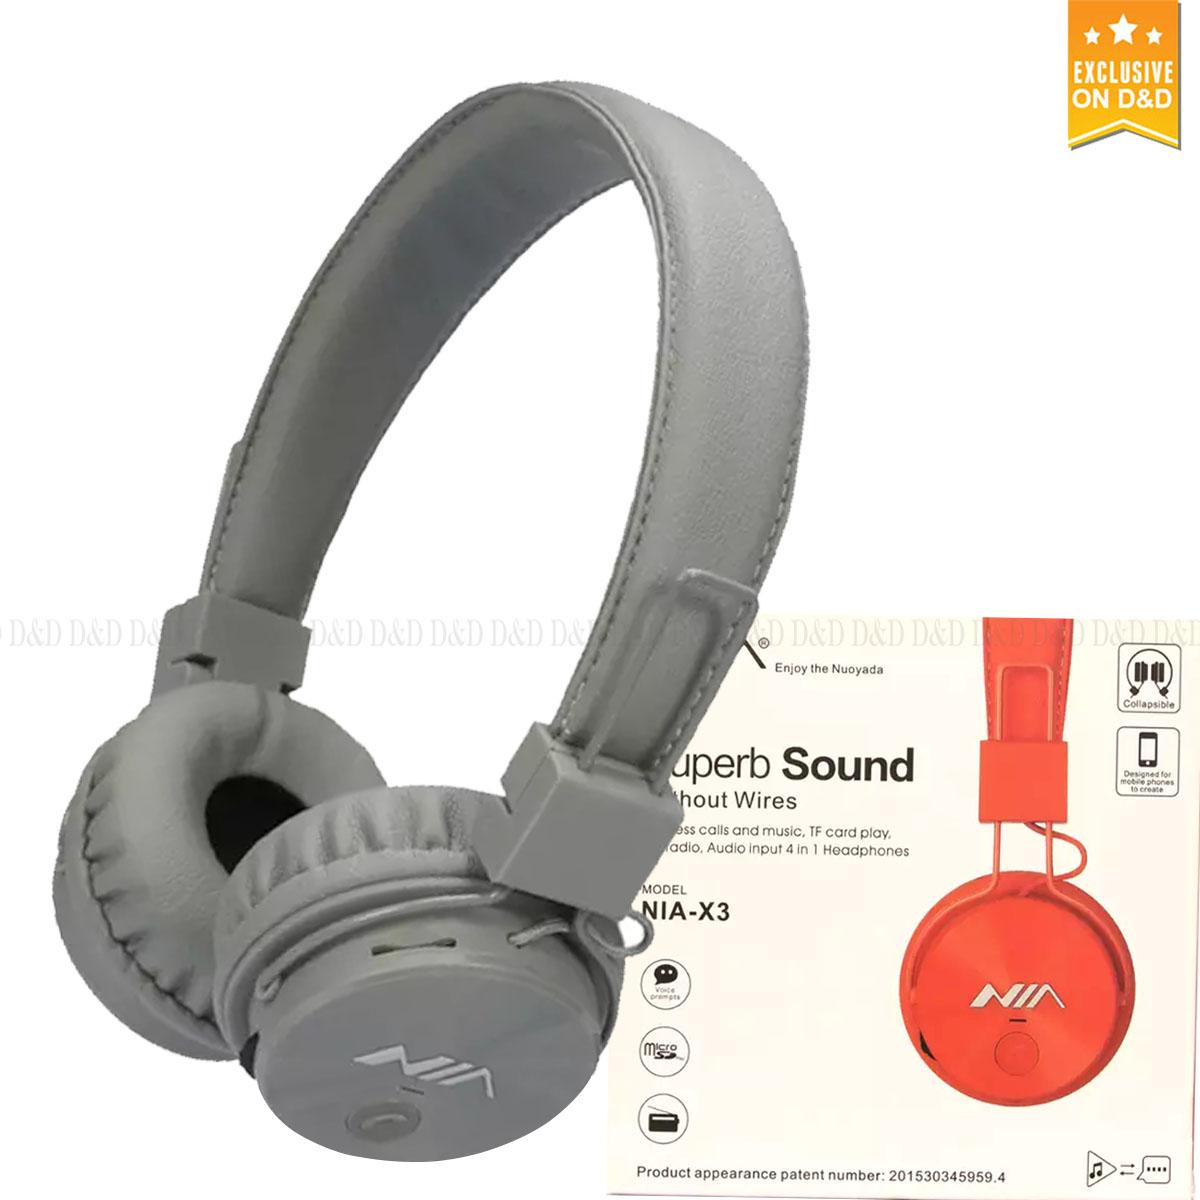 Speaker For Sale Bluetooth Prices Brands Specs In Nubwo Headshet Stereo No040 Original Nia X3 Wireless Headphones Foldable Sport Headsets With Mic Support Tf Card